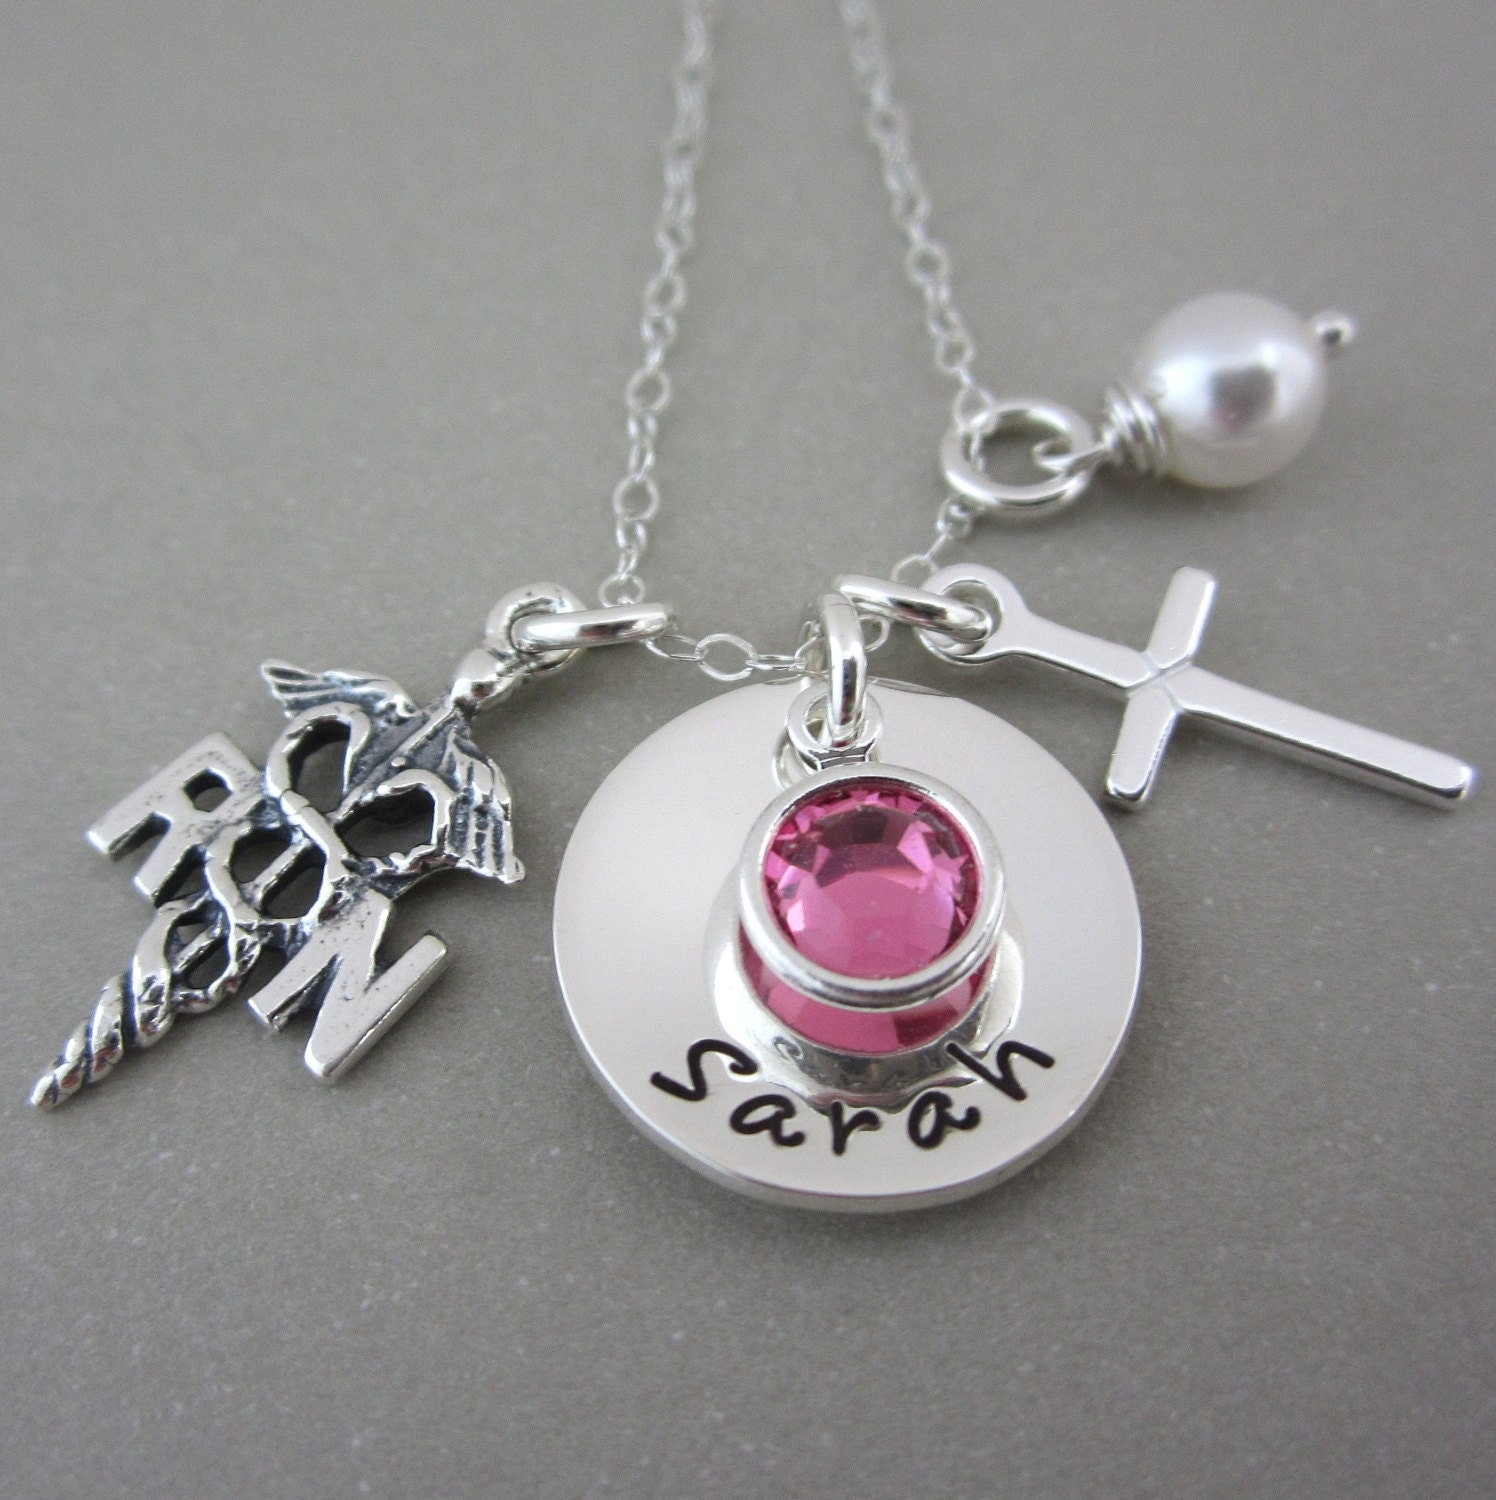 rn lpn personalized jewelry by shinymetals